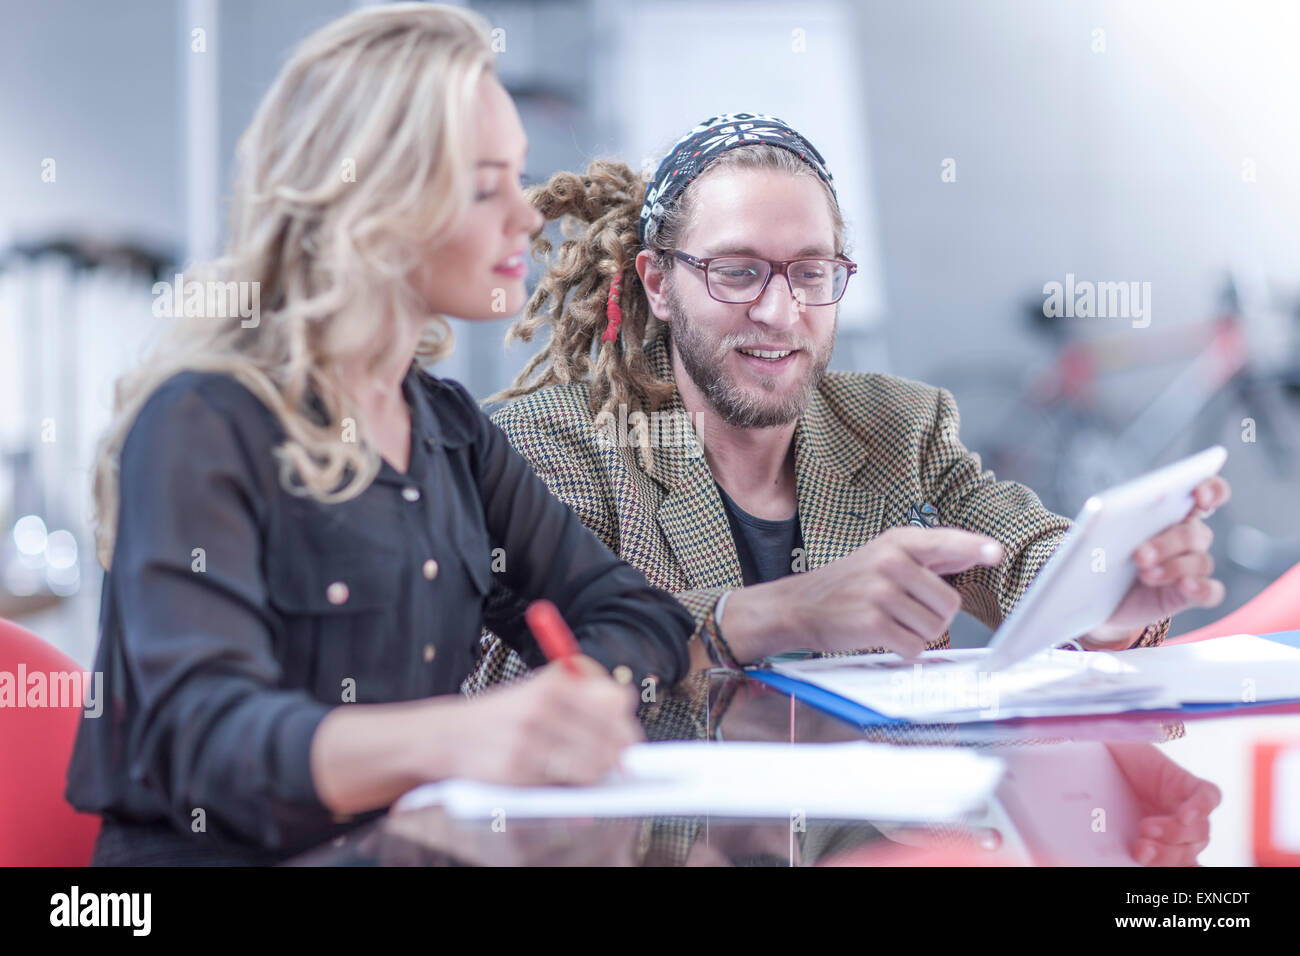 Portrait of a man showing his colleague something on mini tablet - Stock Image